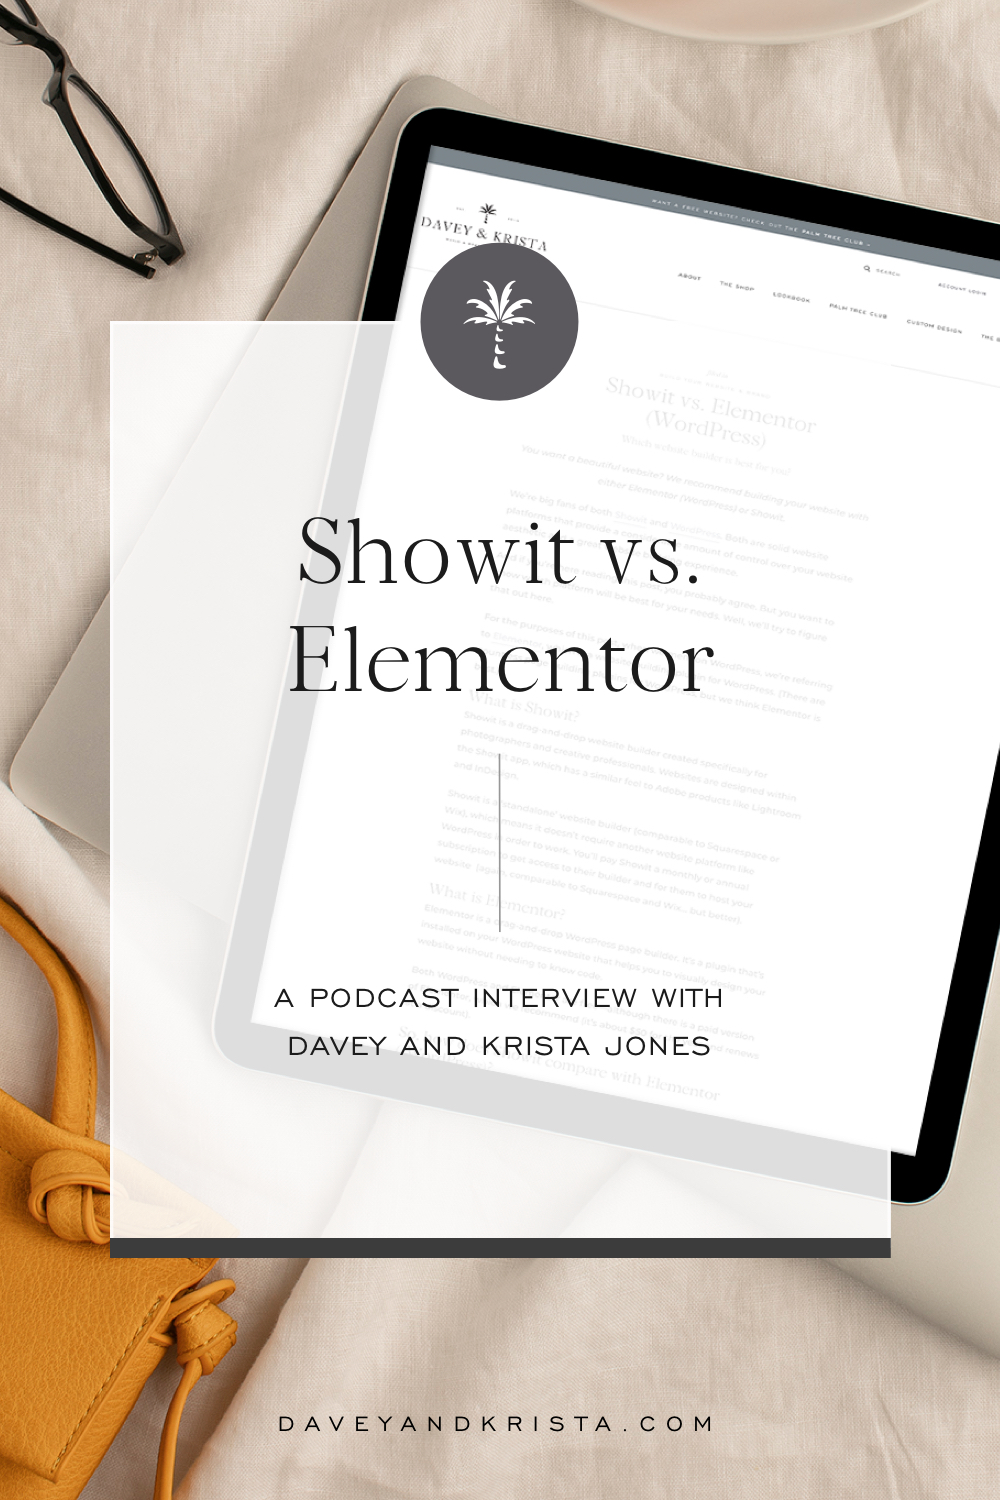 Showit vs. Elementor: Which is better?